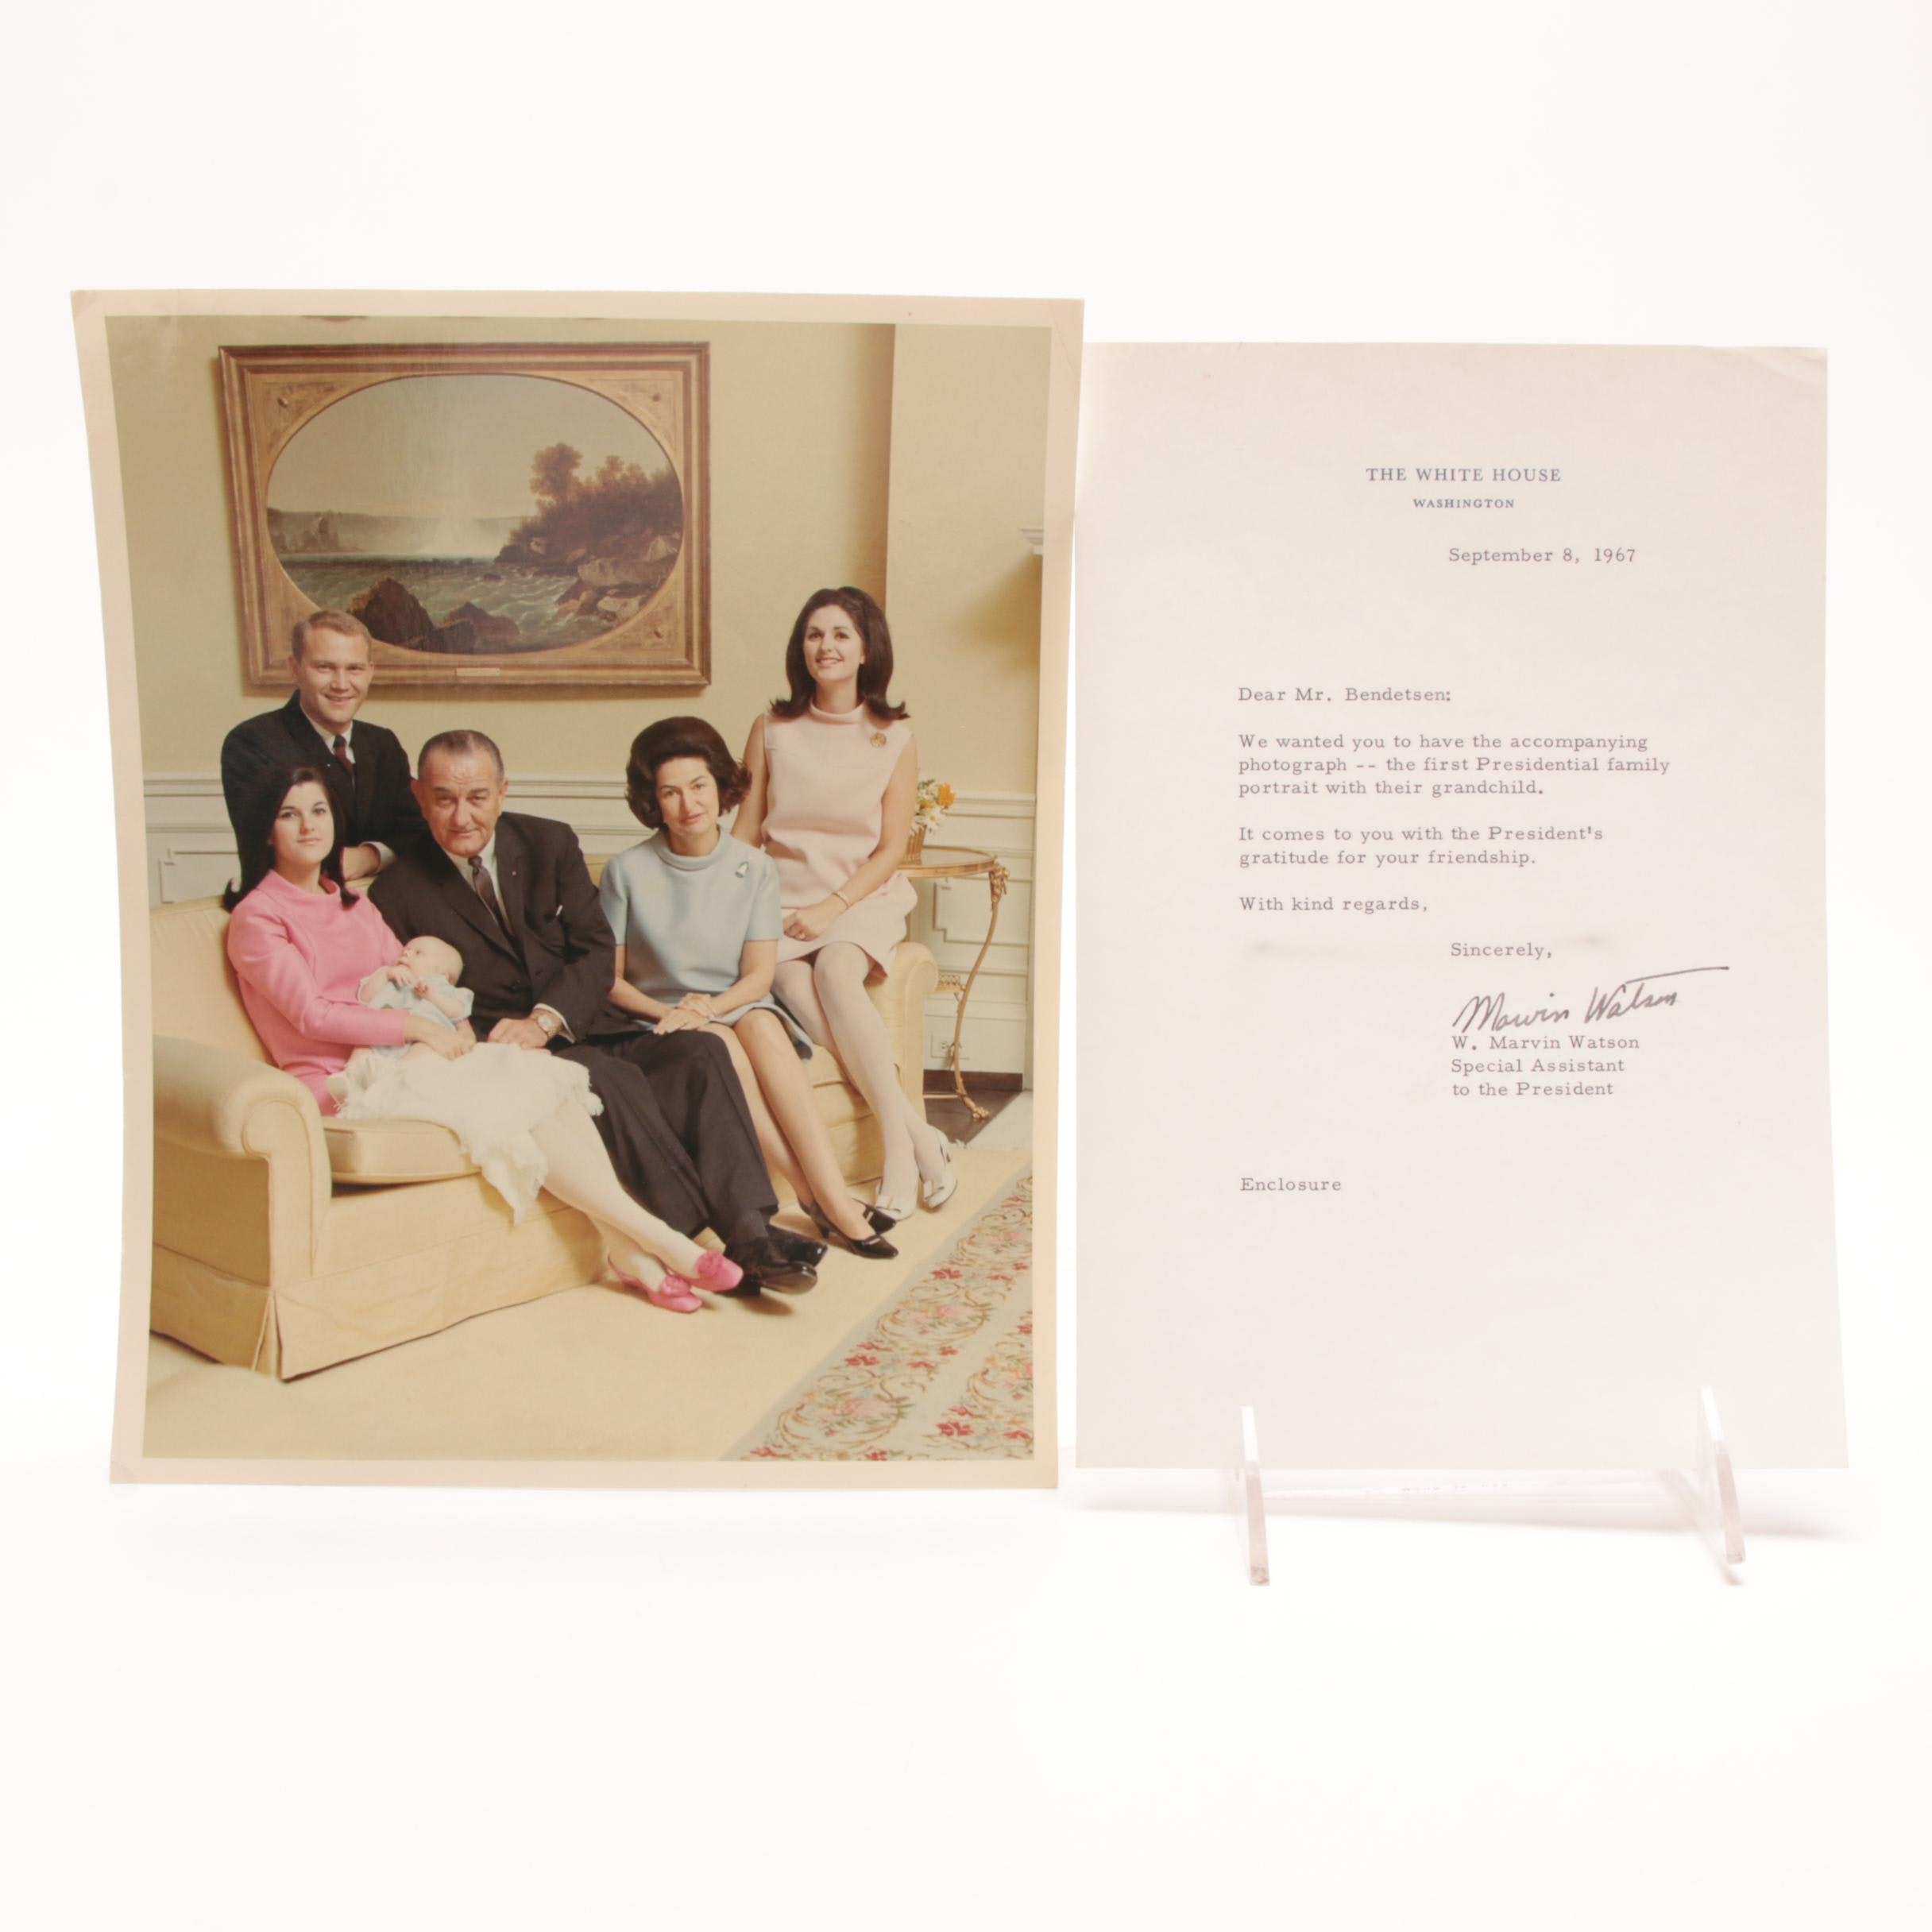 1967 White House Lyndon Johnson Correspondence Letter and Family Portrait